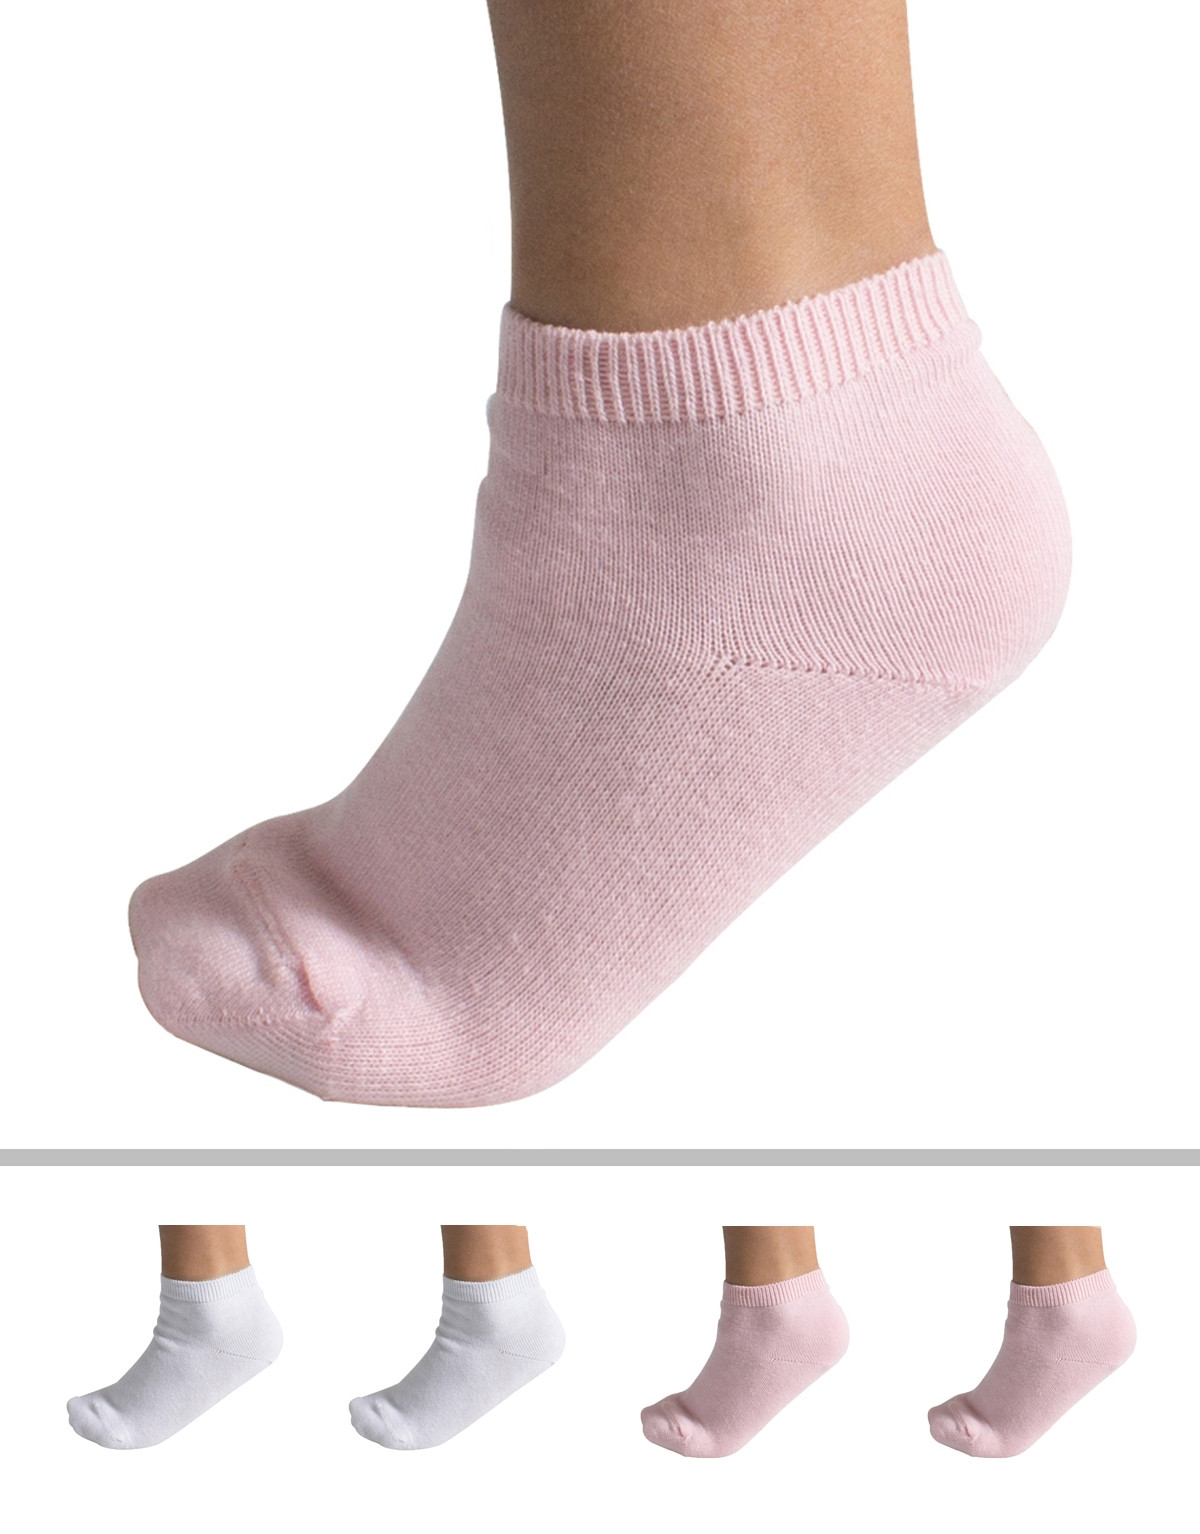 UNISEX COTTON SOCKS